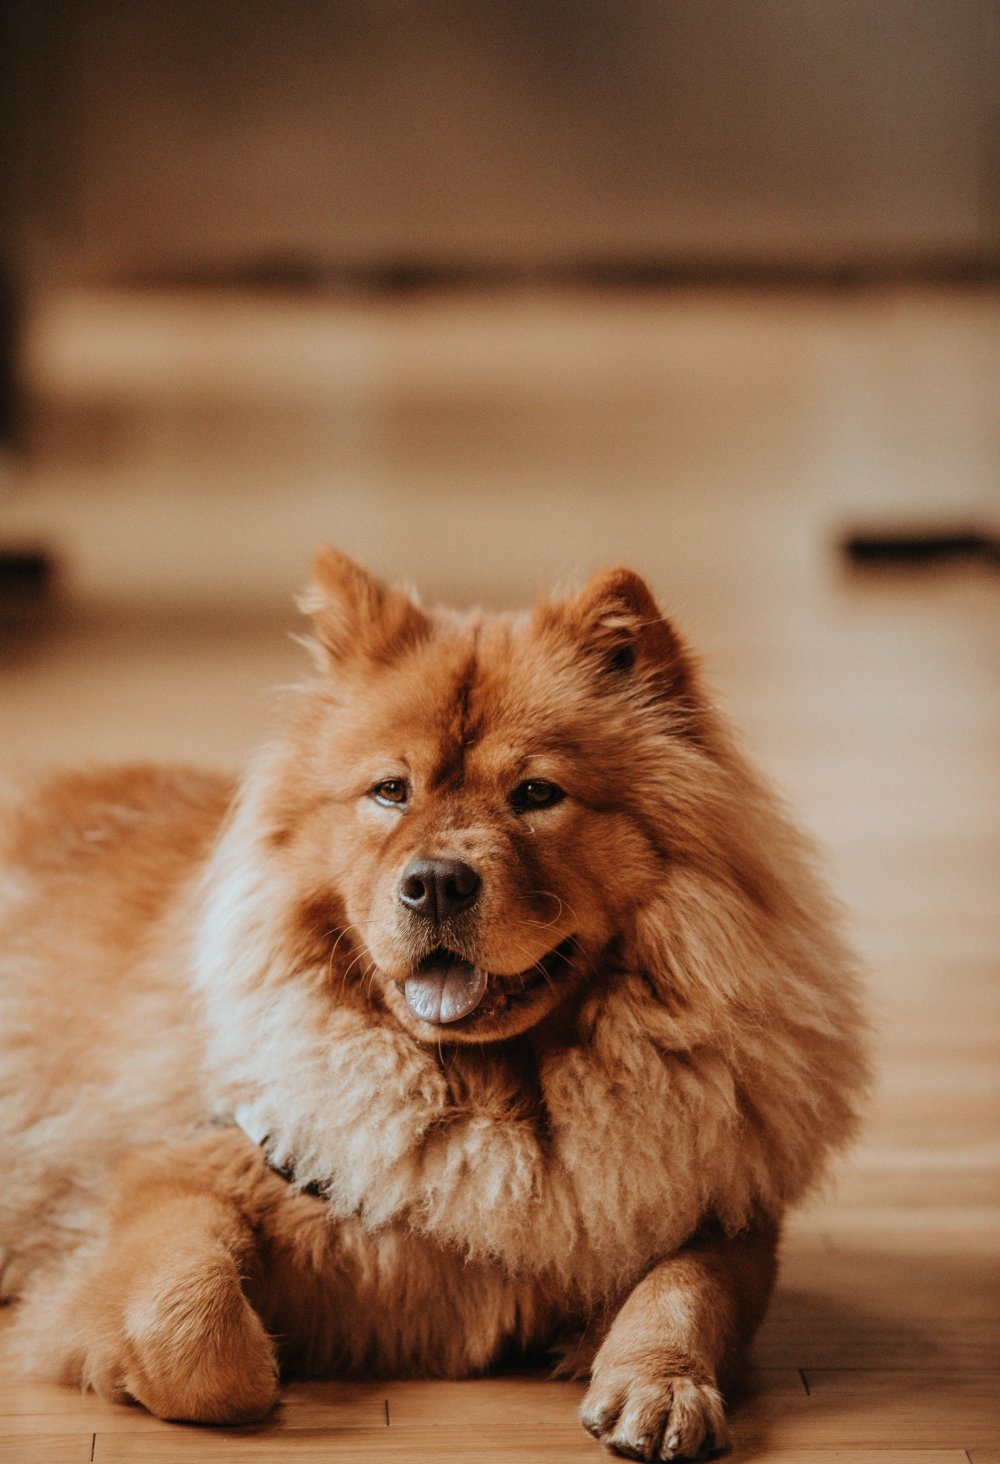 fluffy brown resting dog